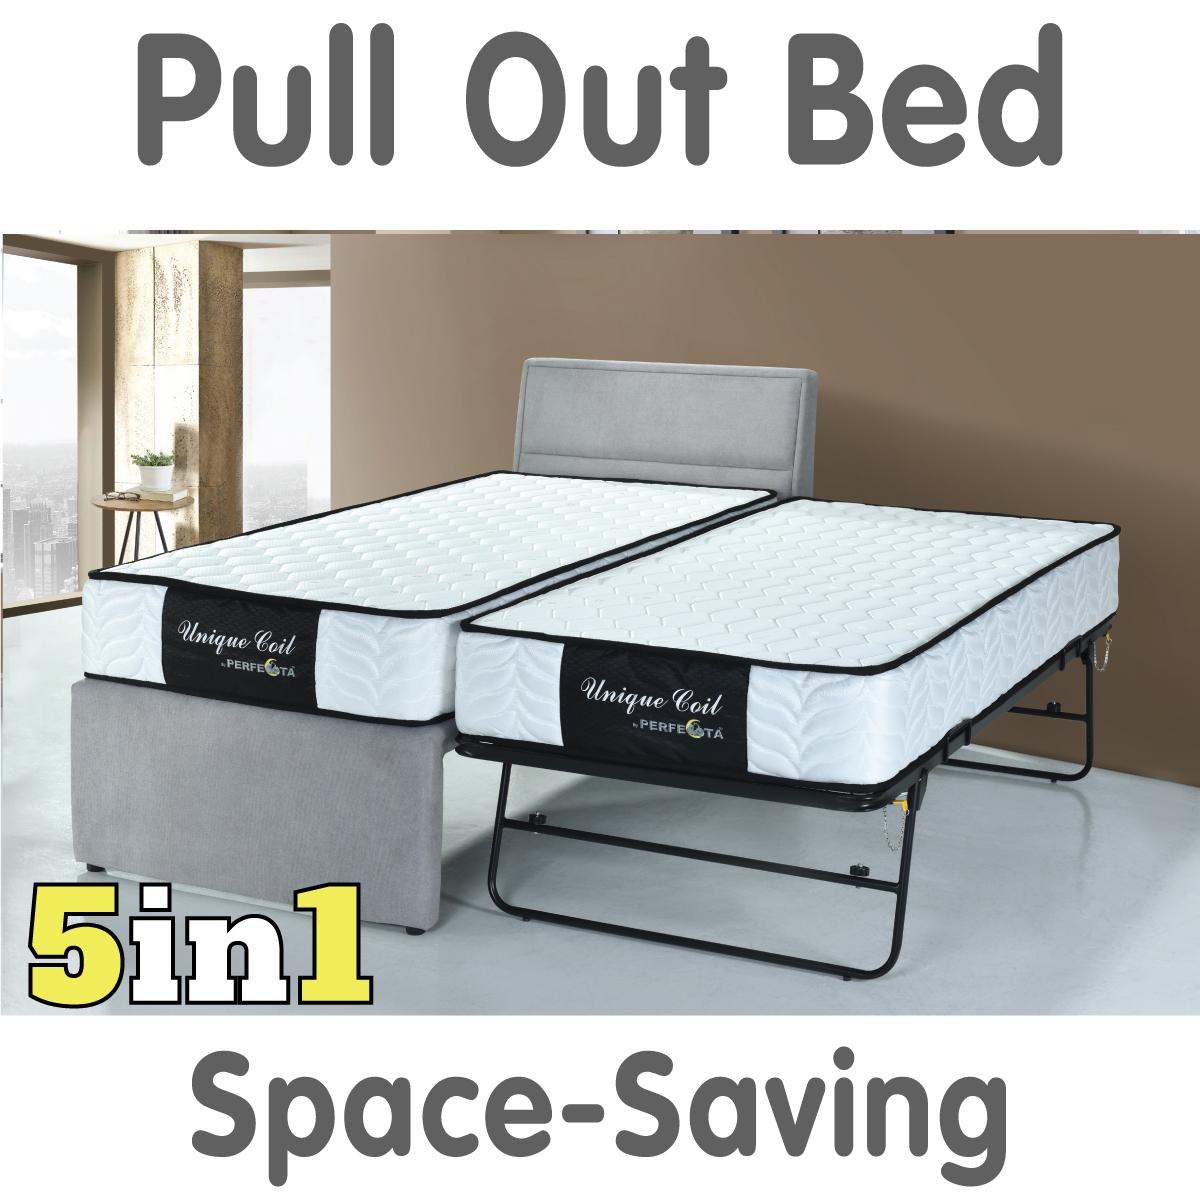 Single size Pull Out Bed 5 in 1 * Free Delivery and Assembly * Local made product